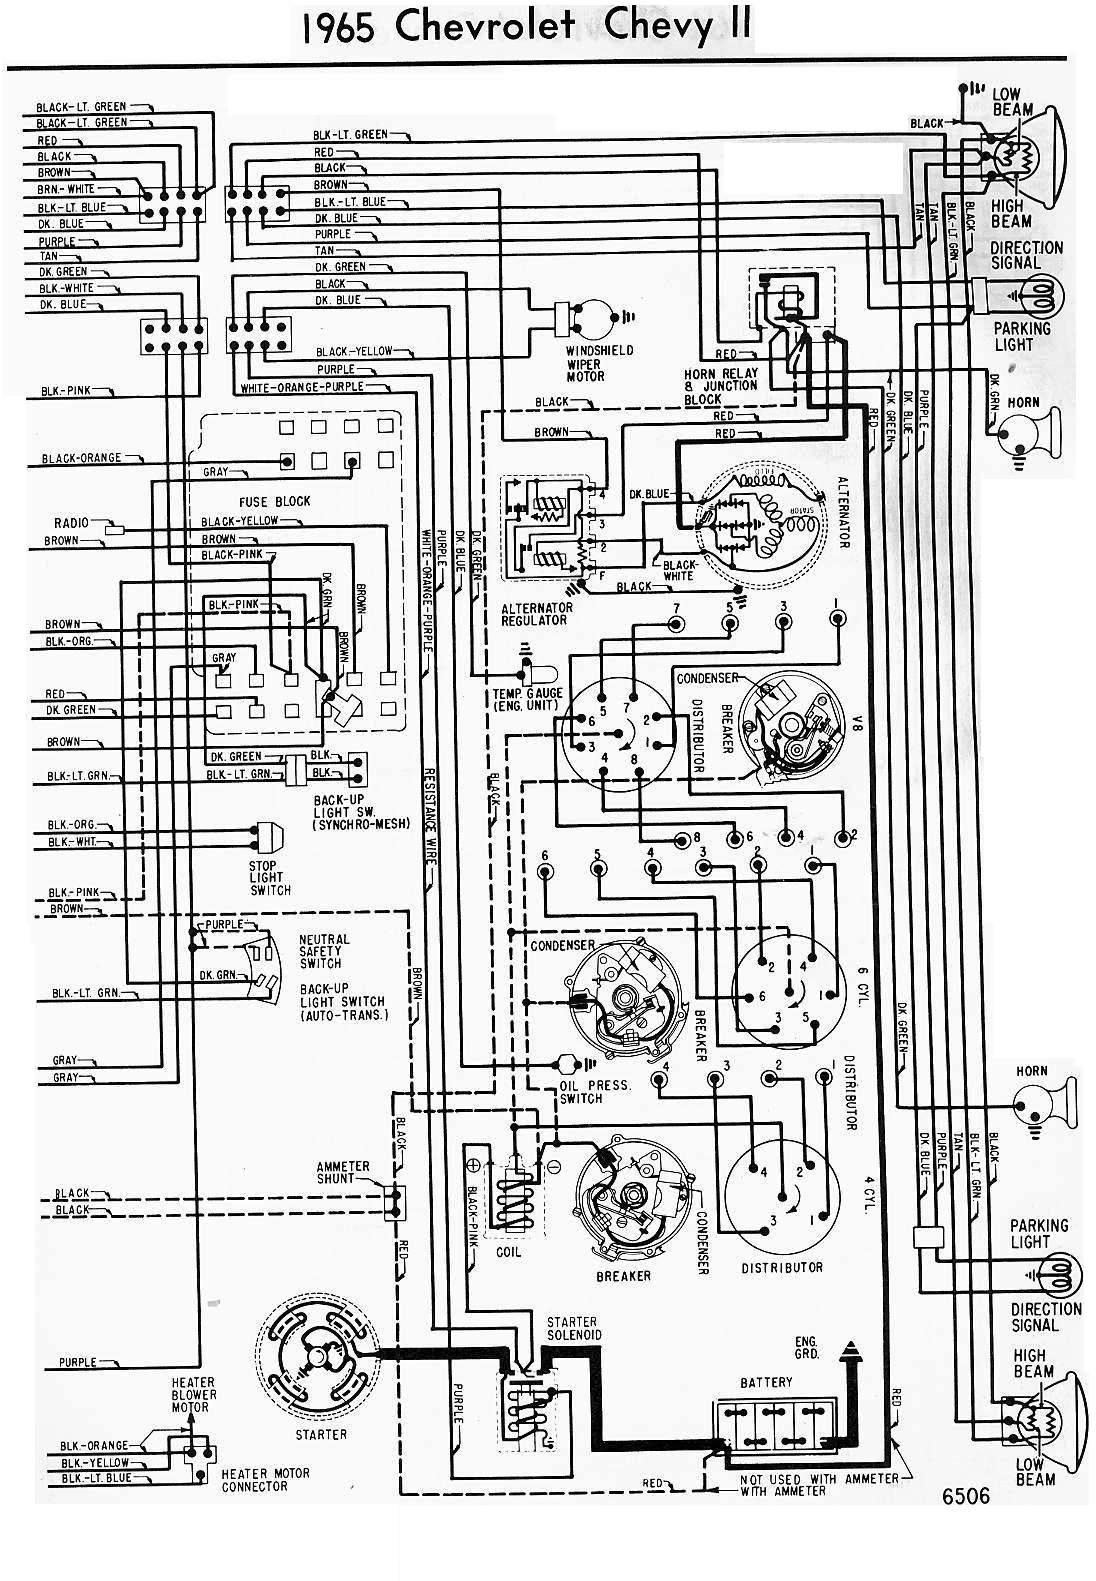 Diagrams Chevy Starter Wiring Diagram 1965 Corvette Electrical 1965 Tvr Wiring  Diagram 1965 Corvette Wiring Diagram Switch